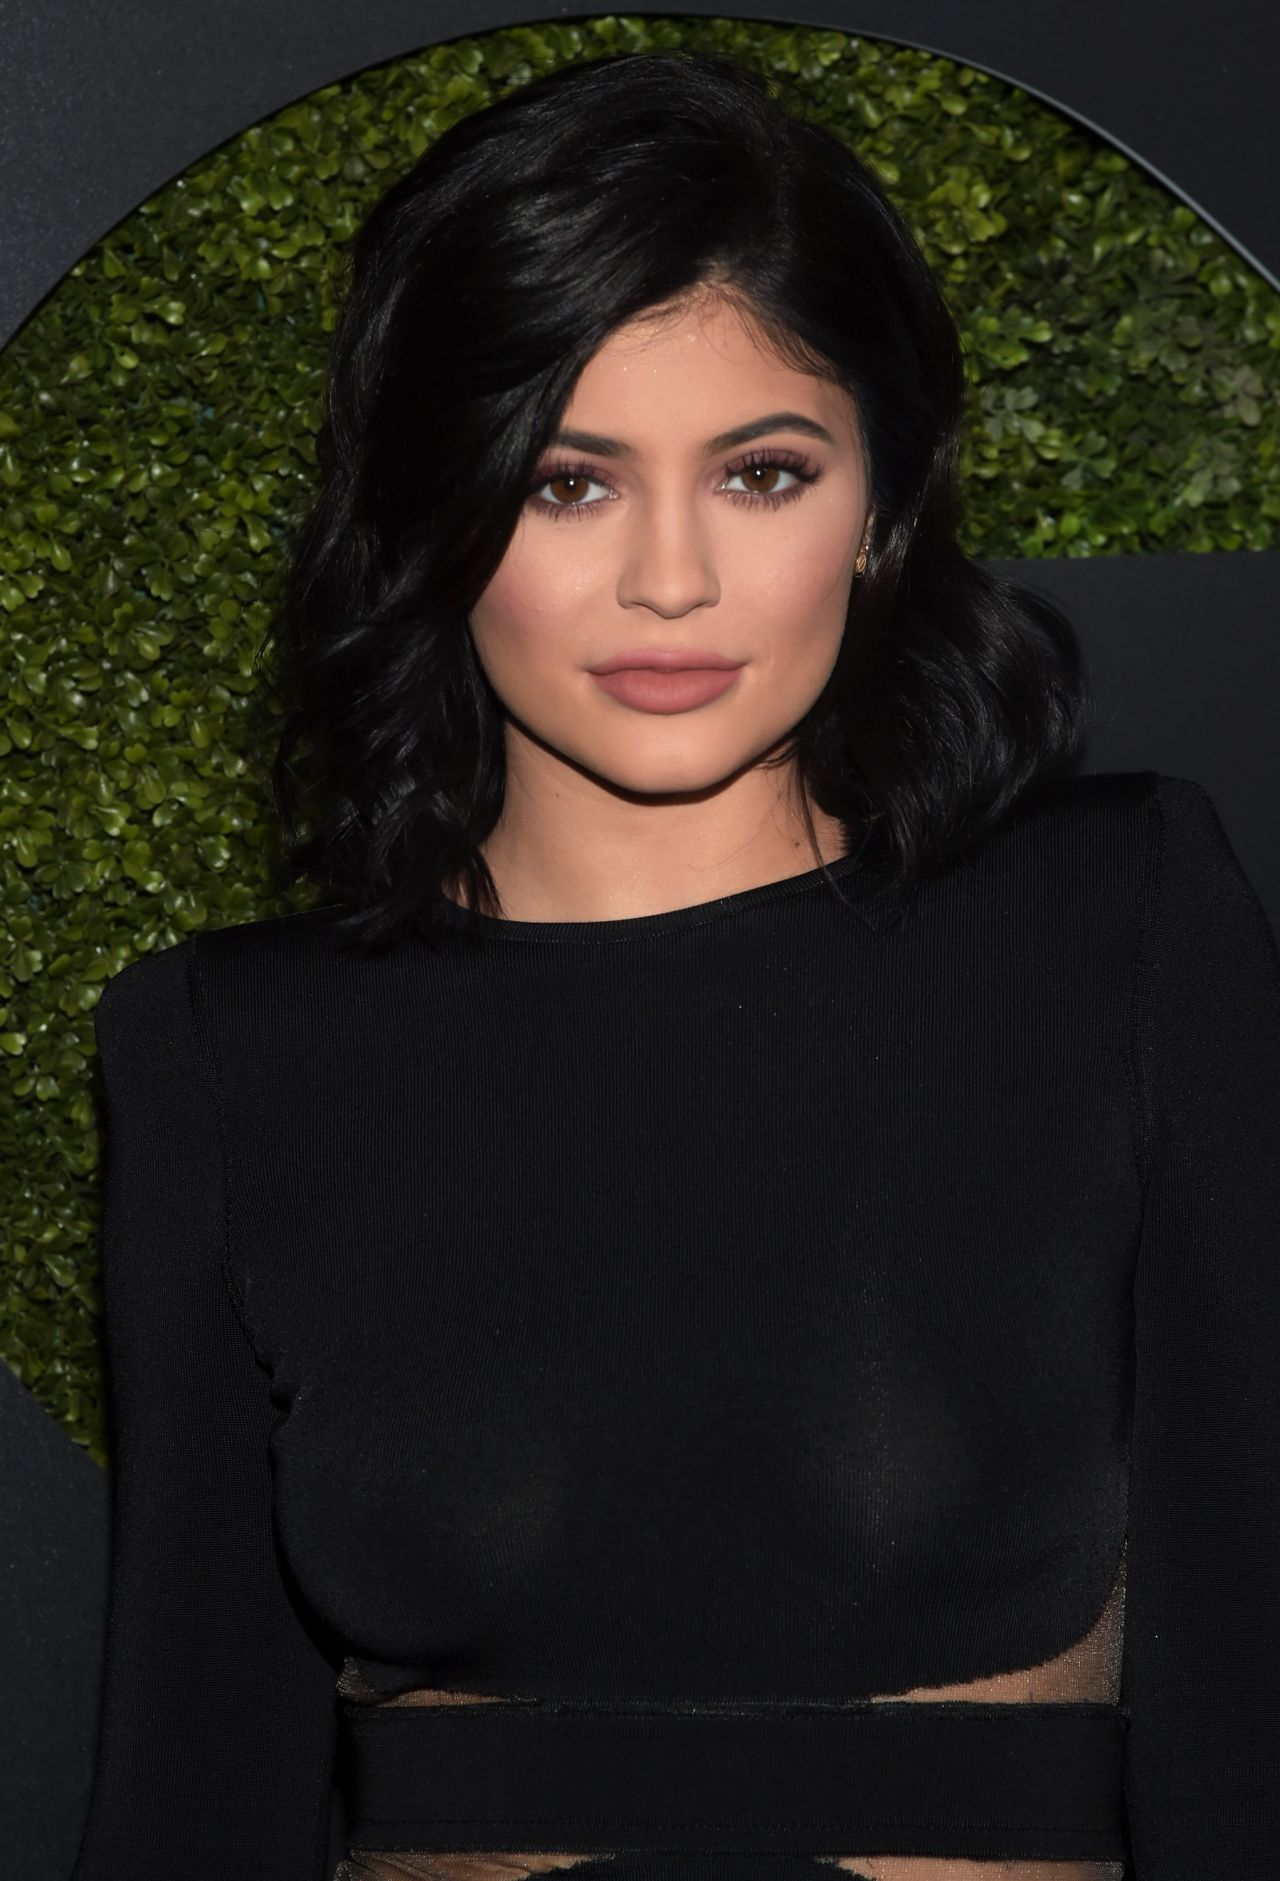 Kylie Jenner Arrives On The Red Carpet At Our Balmain X H: 2015 GQ Men Of The Year Party In Los Angeles